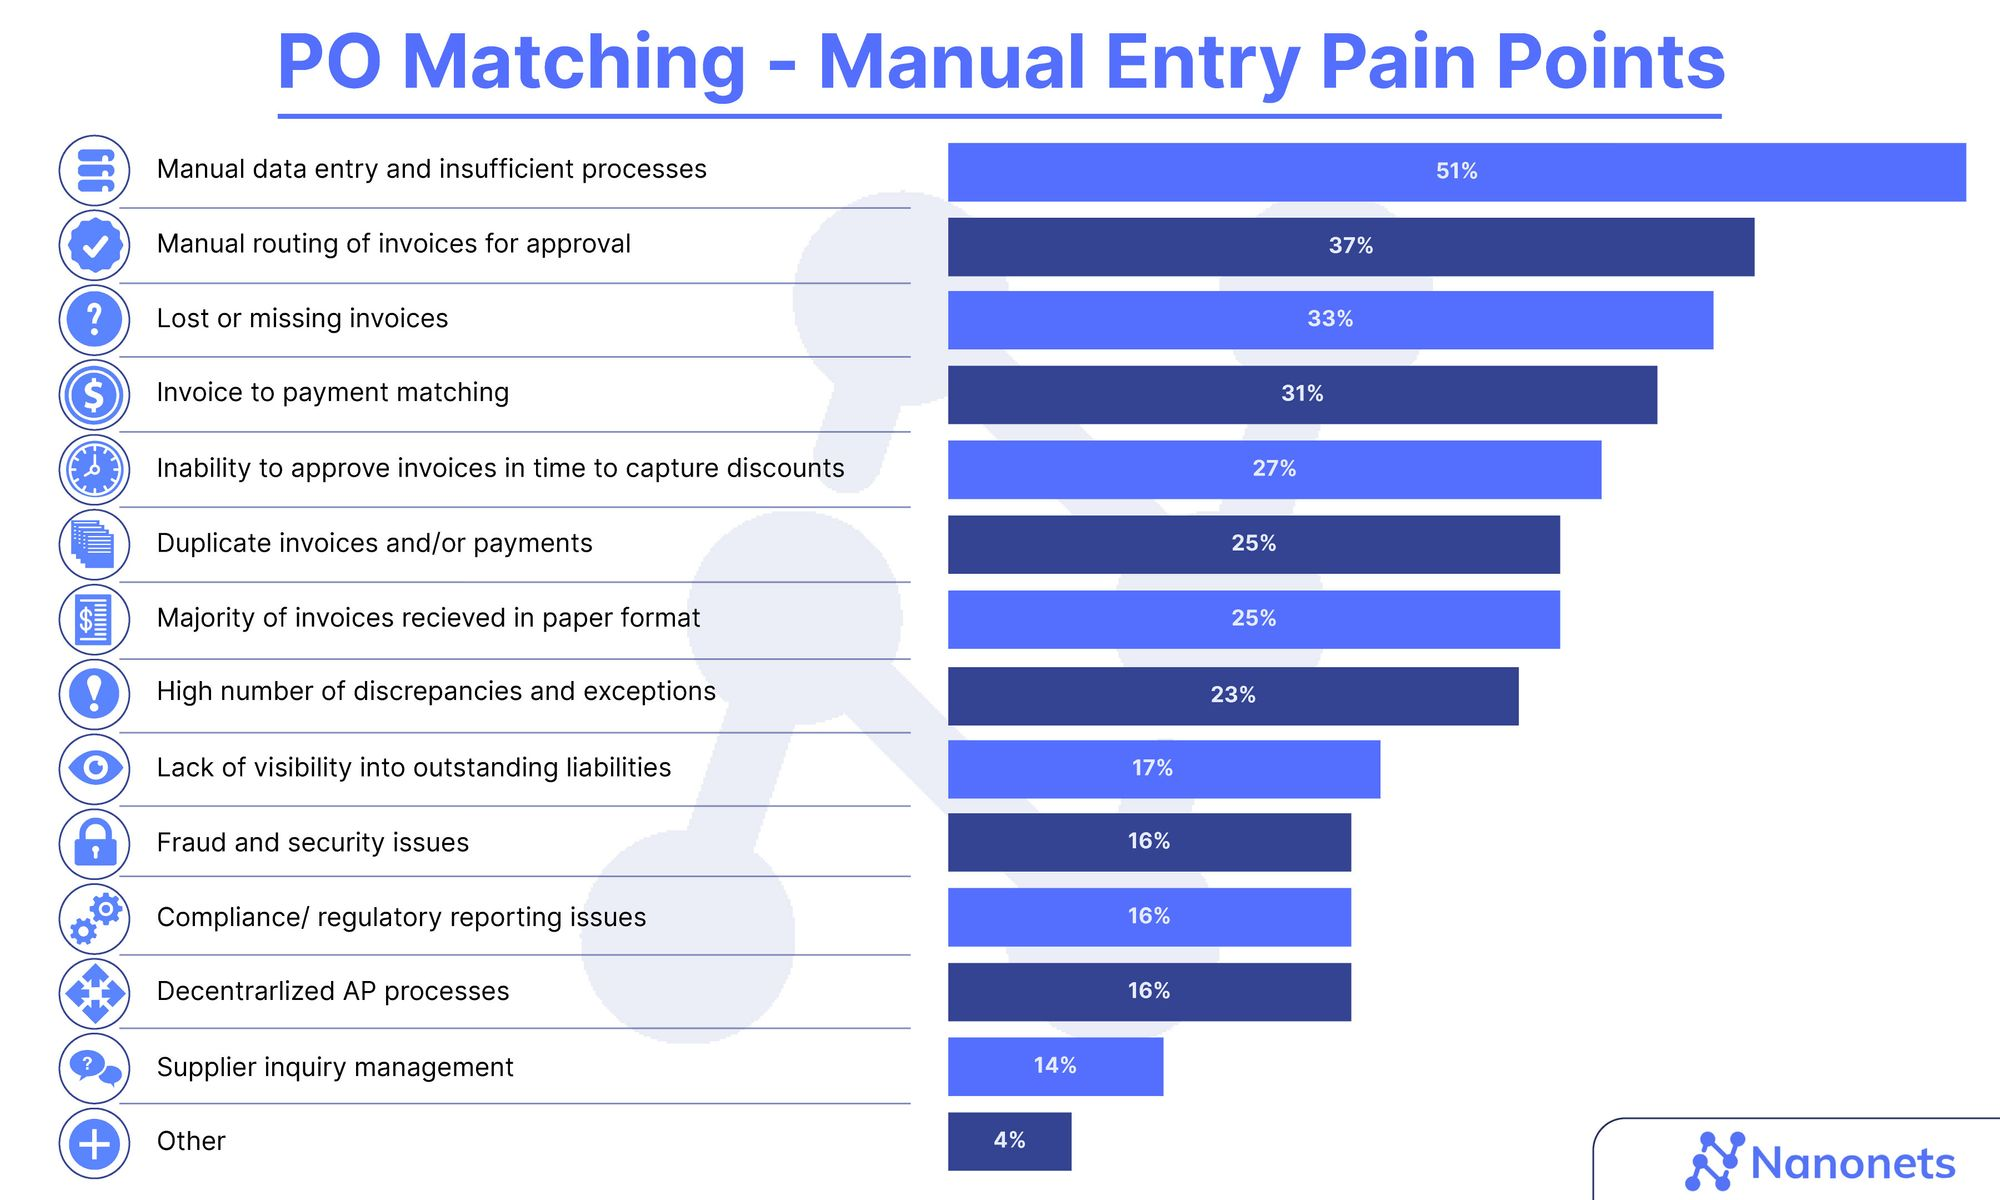 Manual PO Matching Pain Points